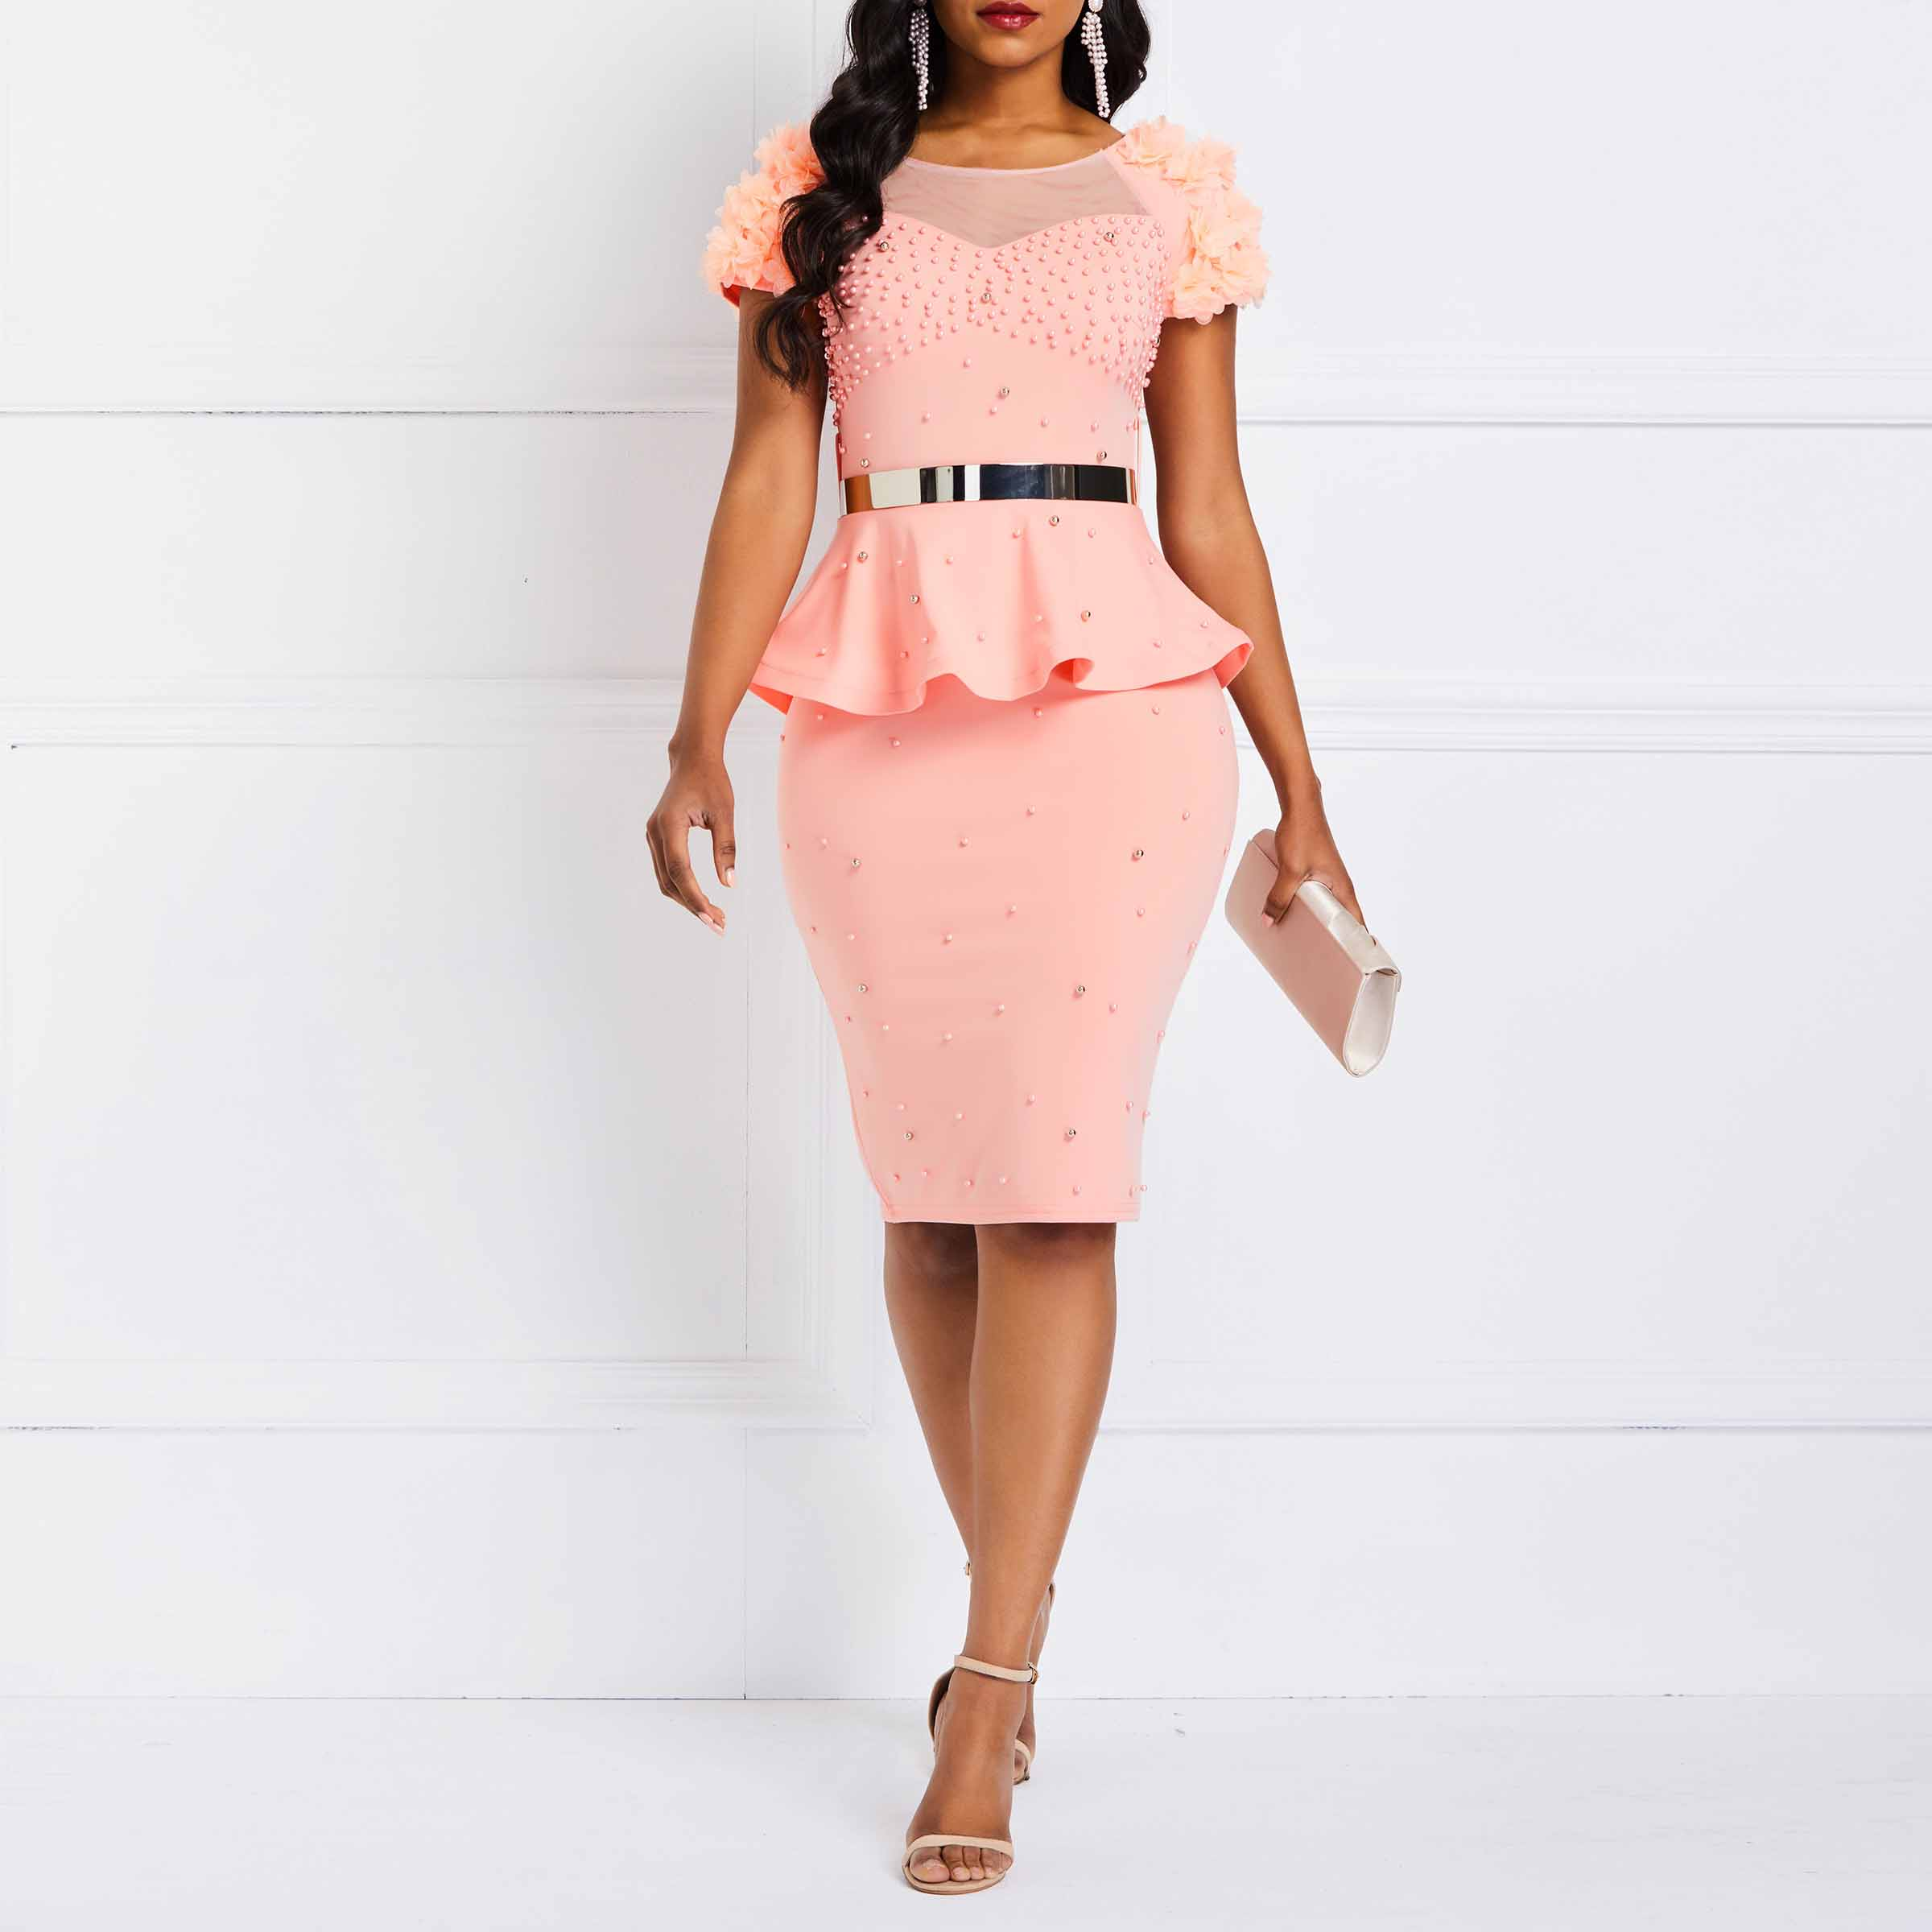 fb3edc1137ede best top pink evening short dress list and get free shipping - f57ijah9